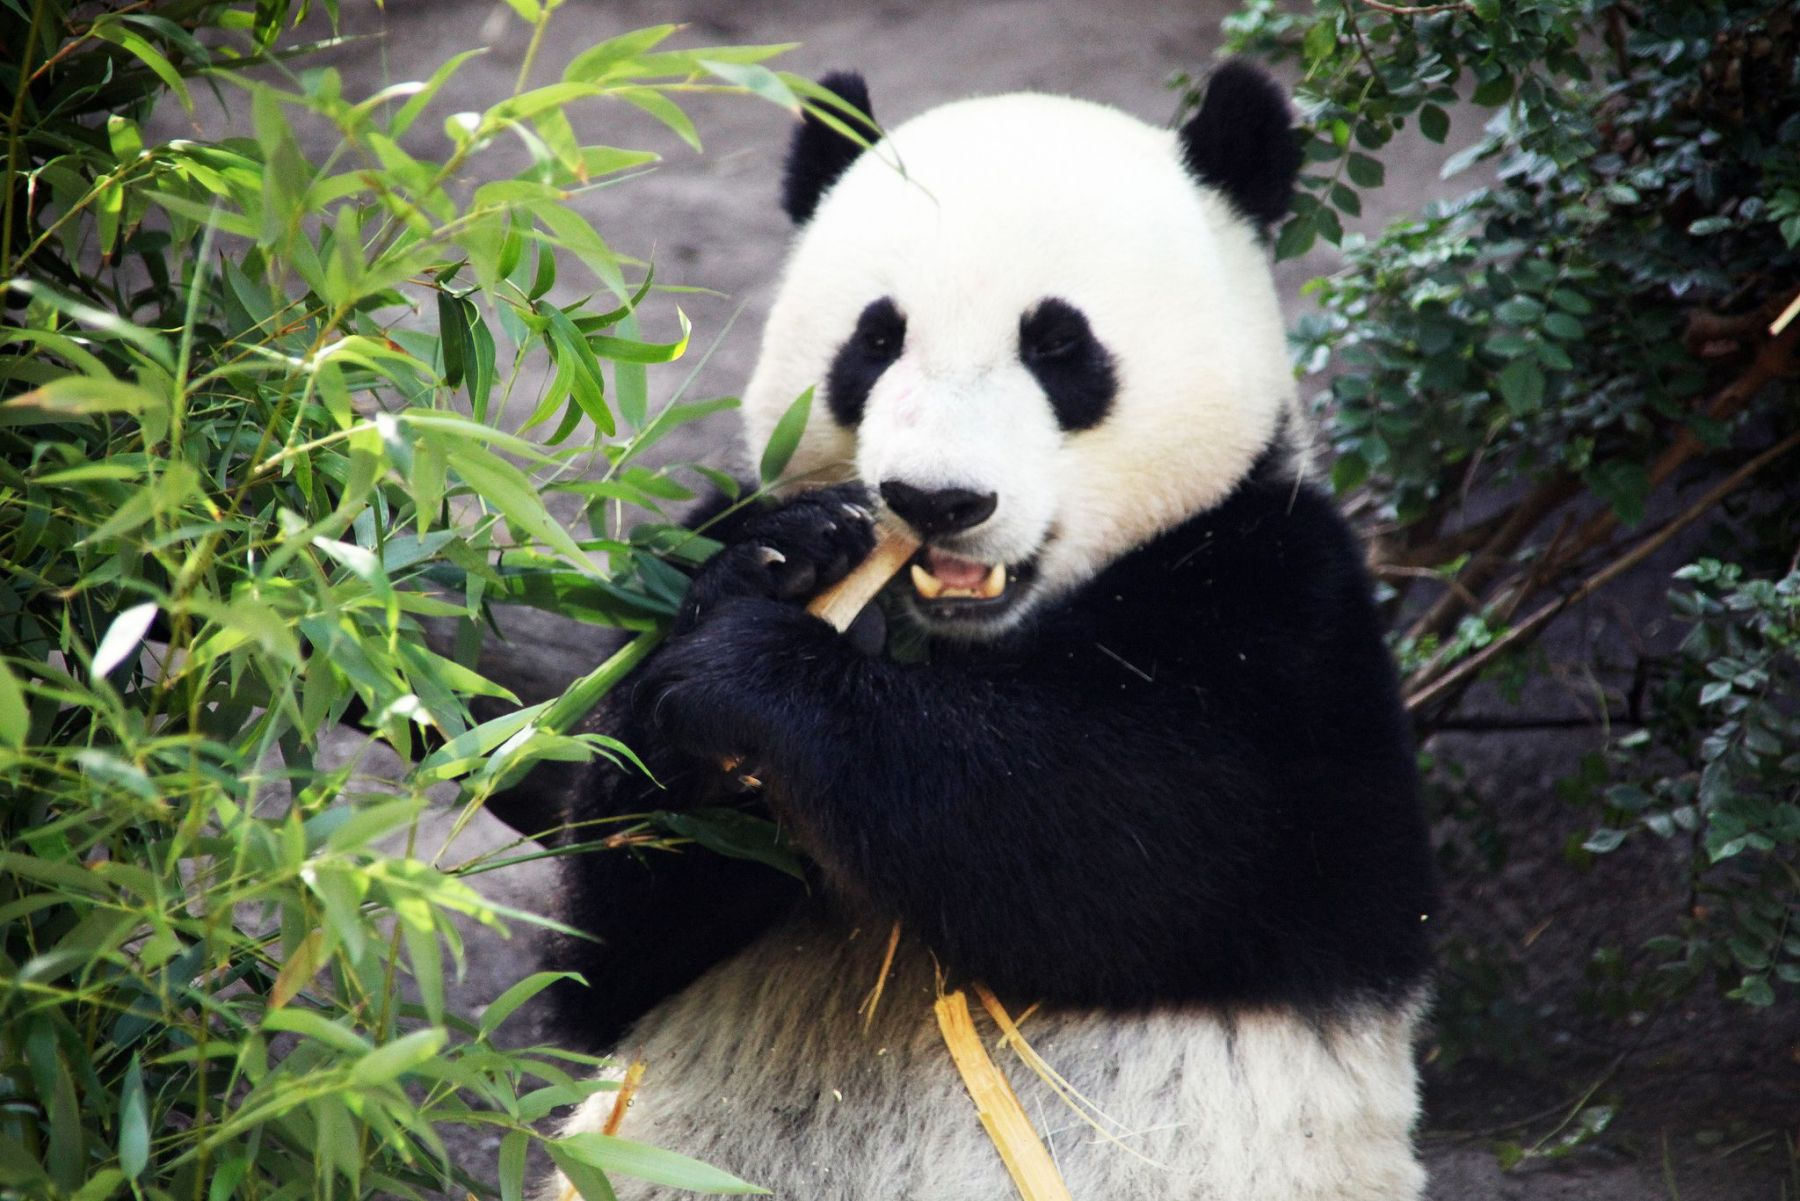 Panda survive eating only bamboo carnivours